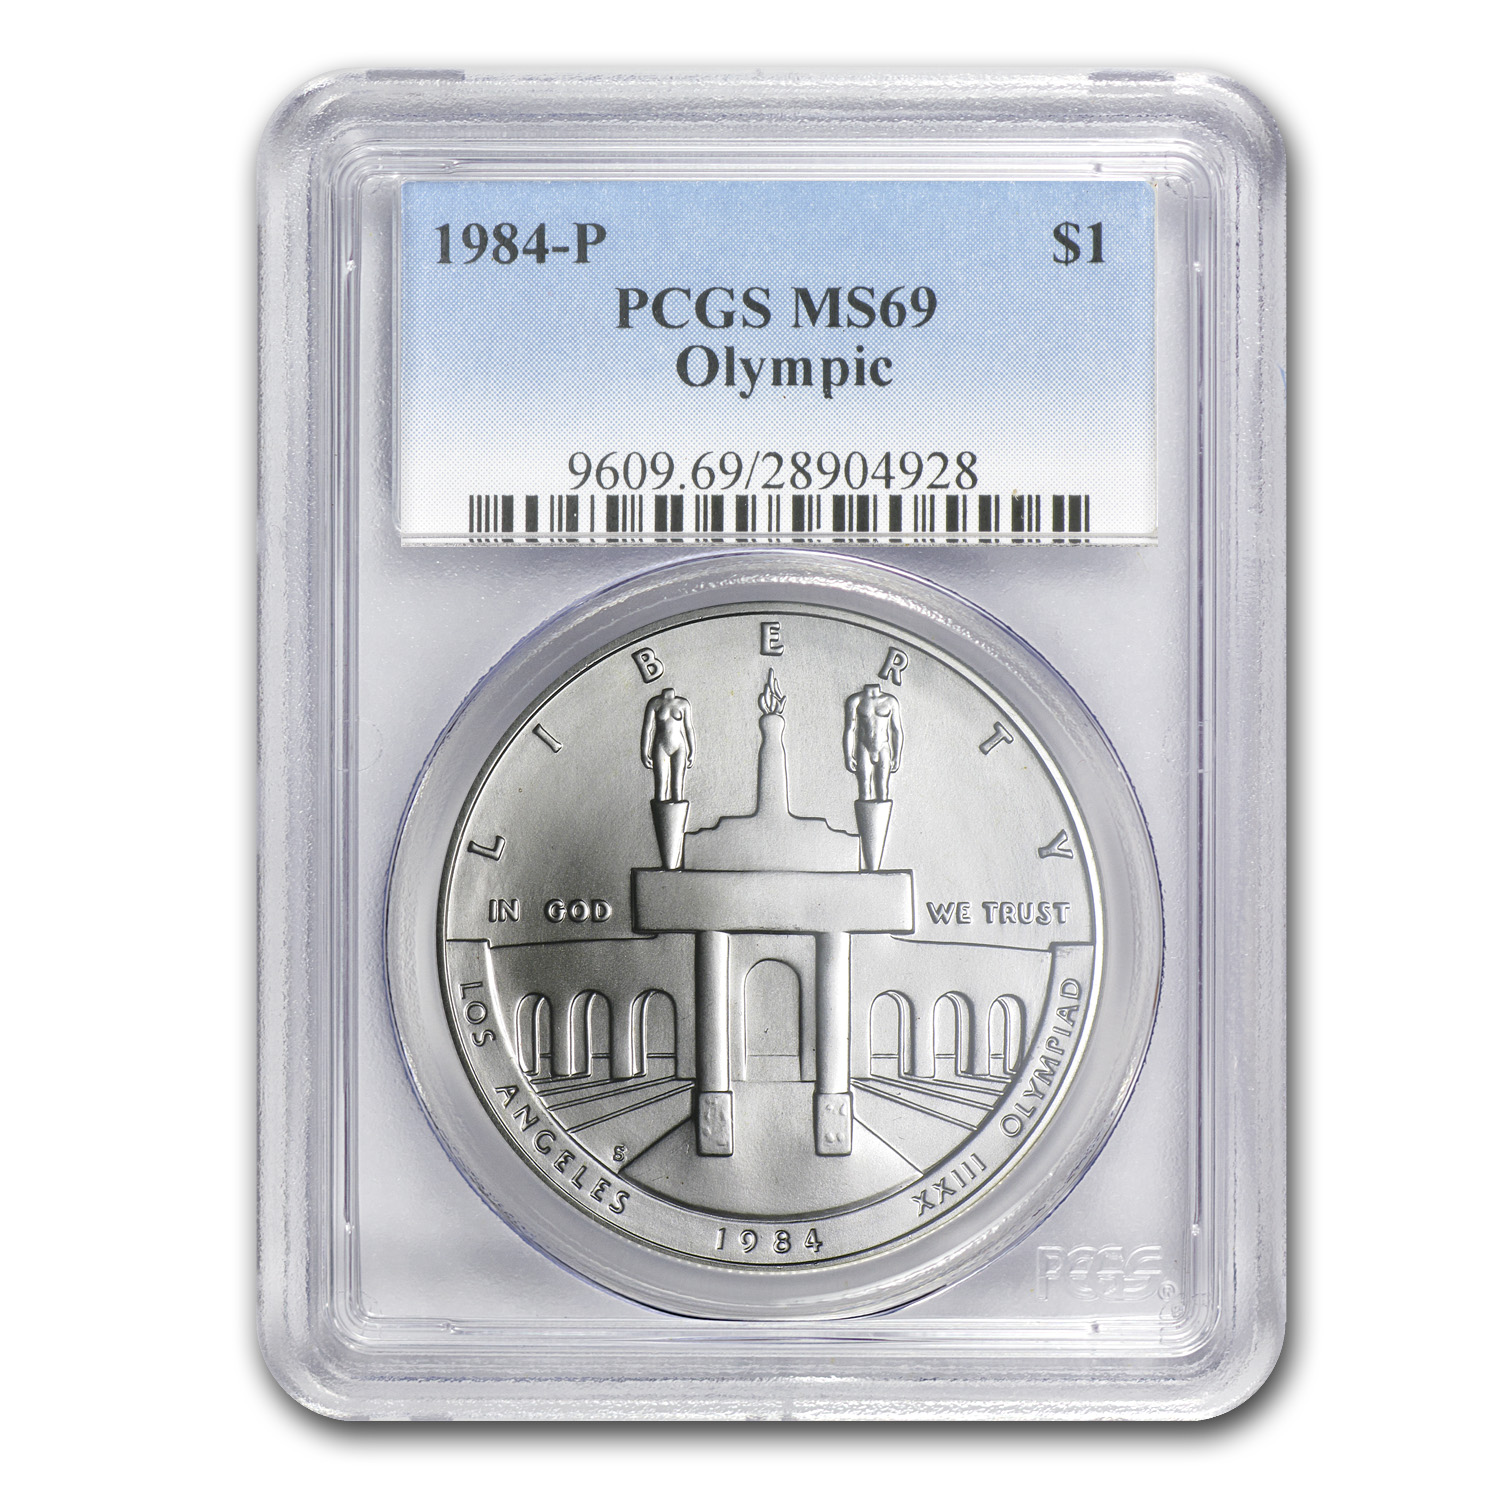 1984-P Olympic $1 Silver Commem MS-69 PCGS